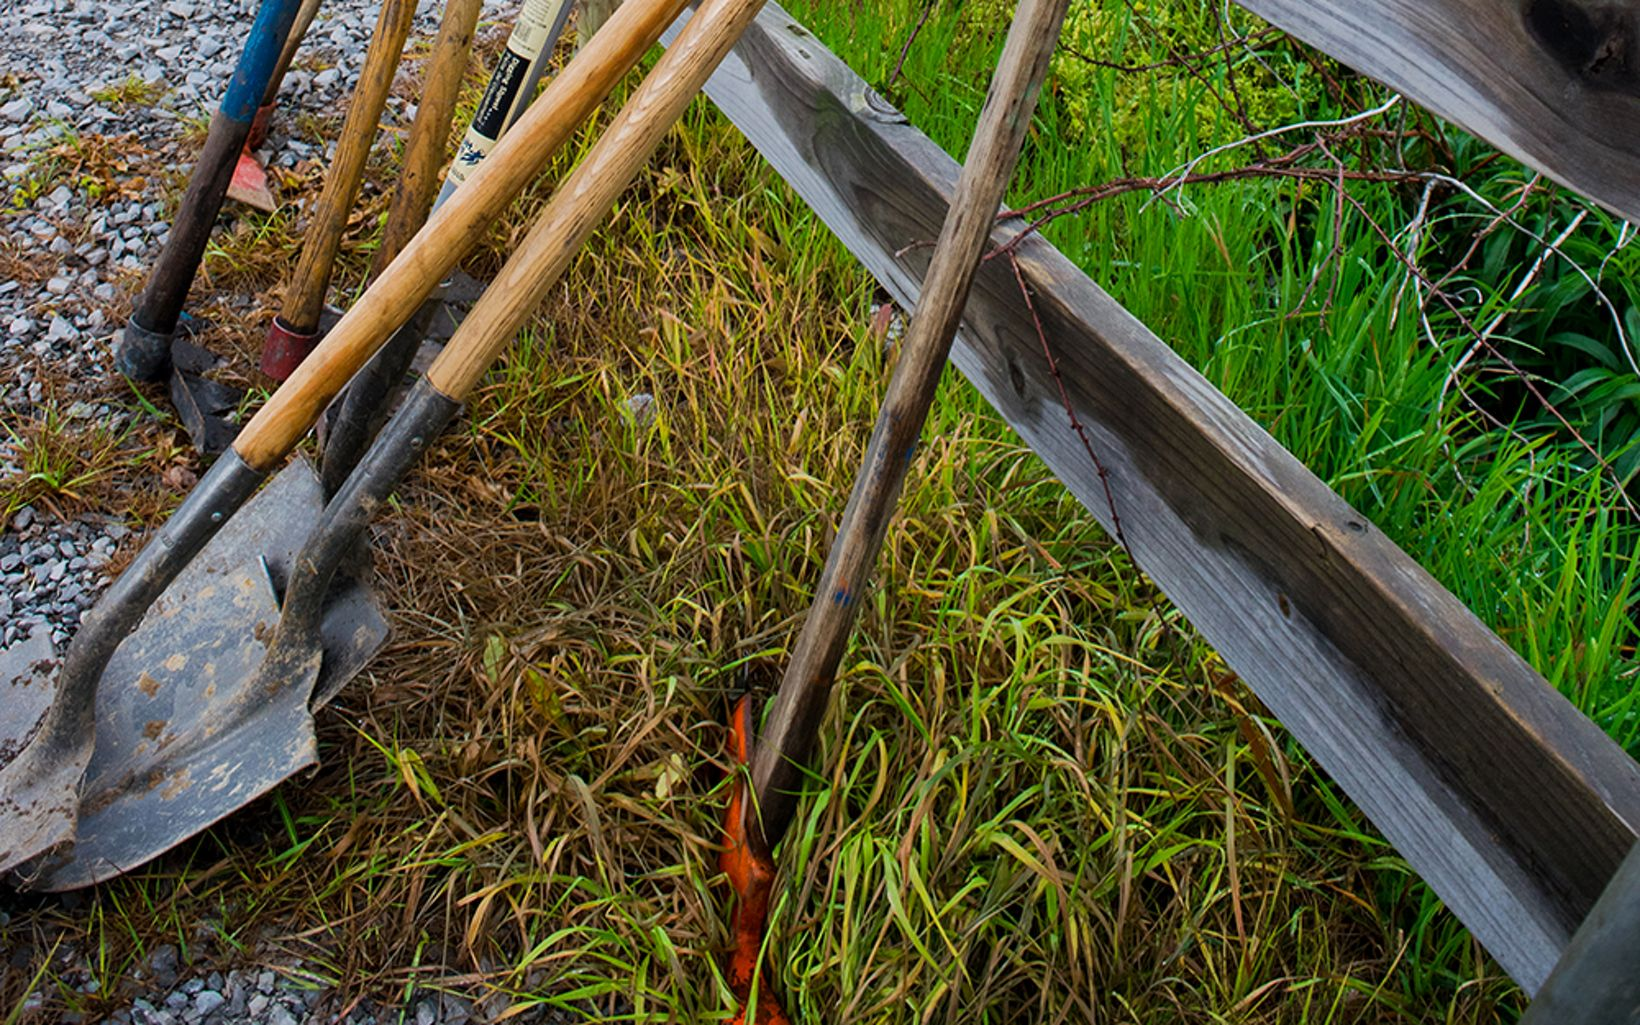 Shovels and other tools lean against a plank fence.